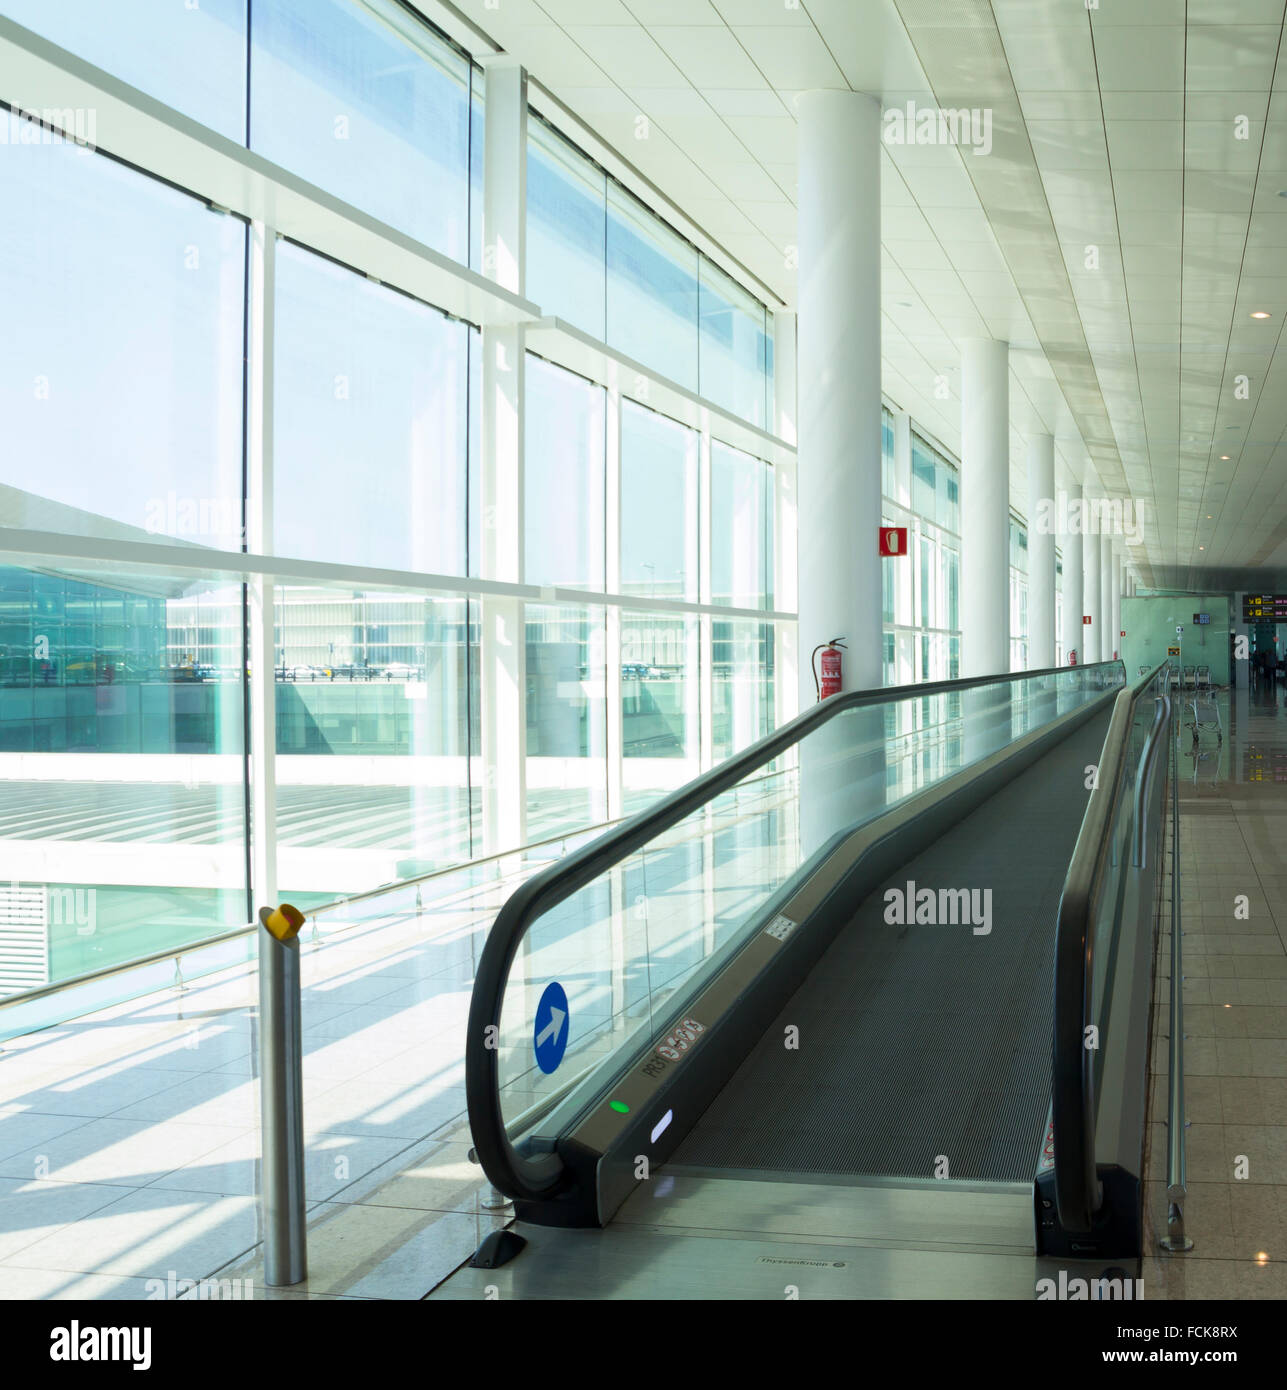 Conveyor belt for people, in a luminous terminal of an airport - Stock Image